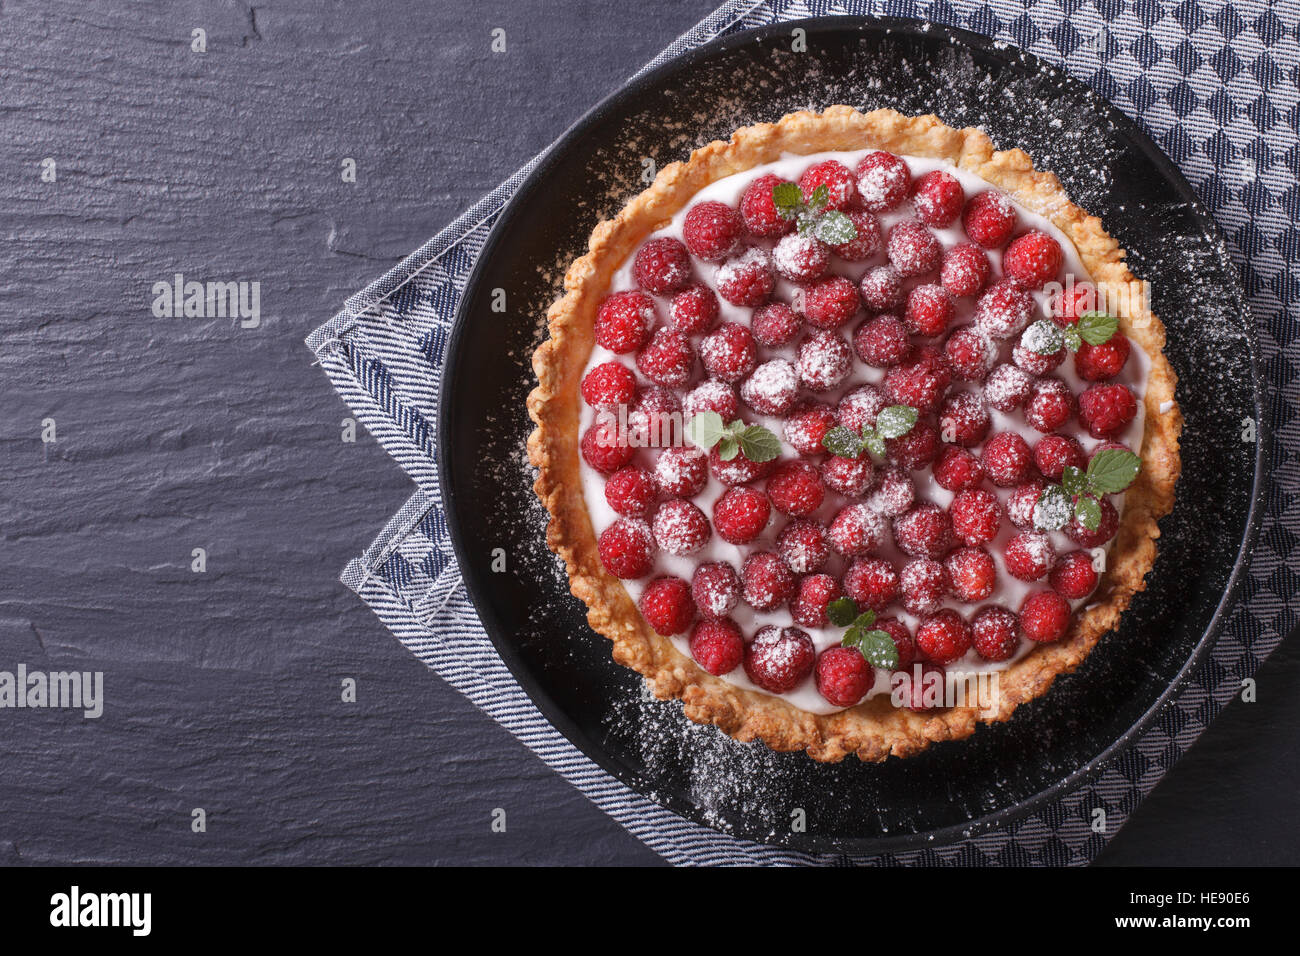 raspberry tart with cheese cream on a plate close-up horizontal view from above - Stock Image